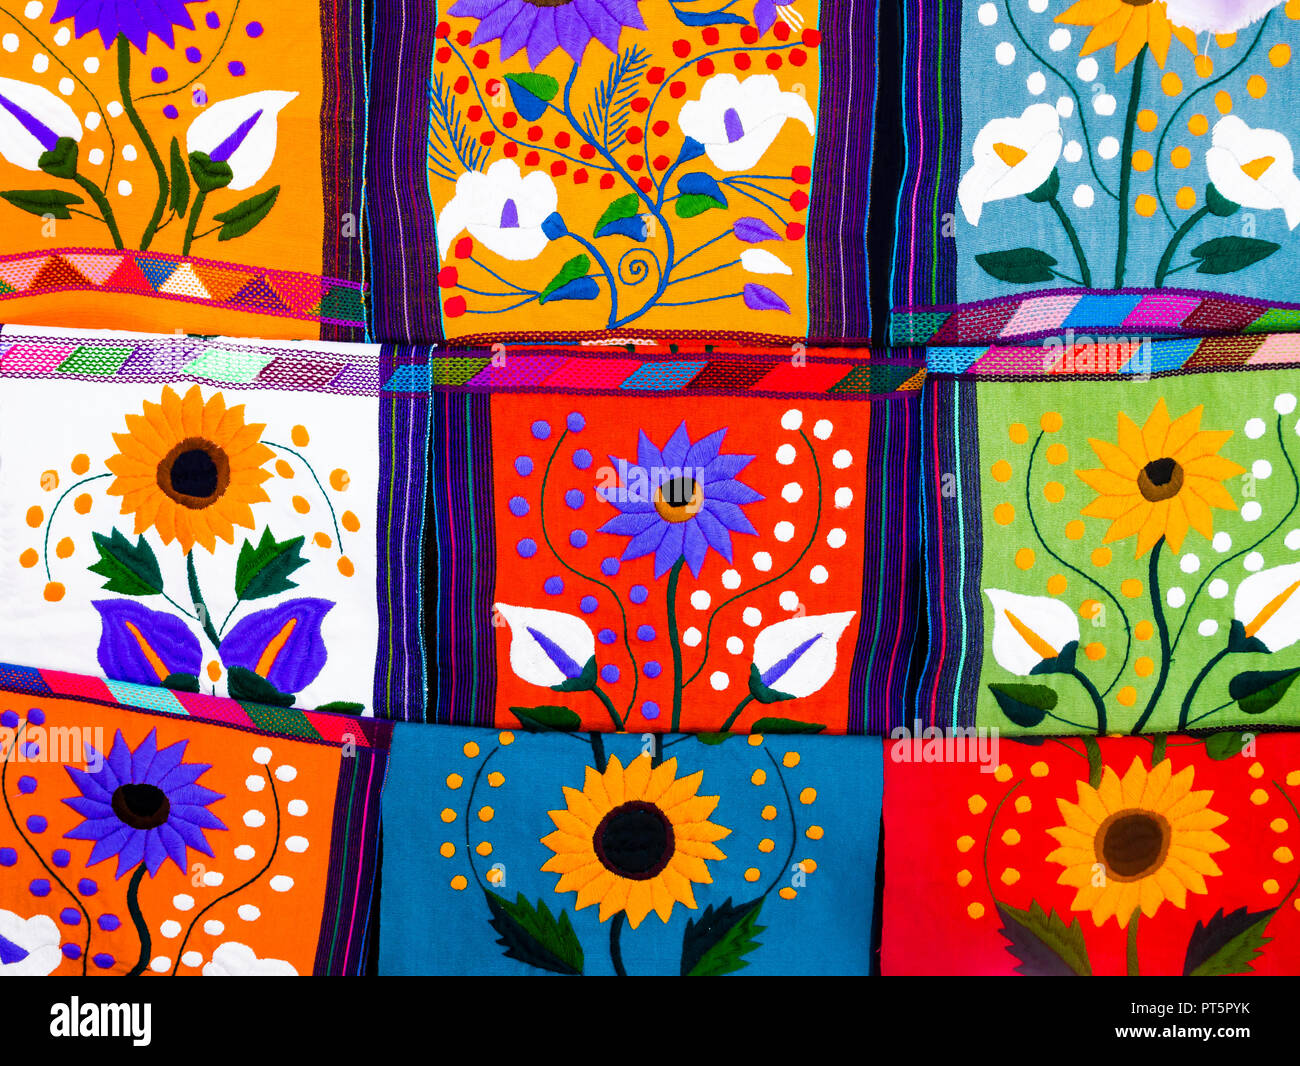 Multicolored ethnic placemats with floral patterns and geometric shapes Stock Photo